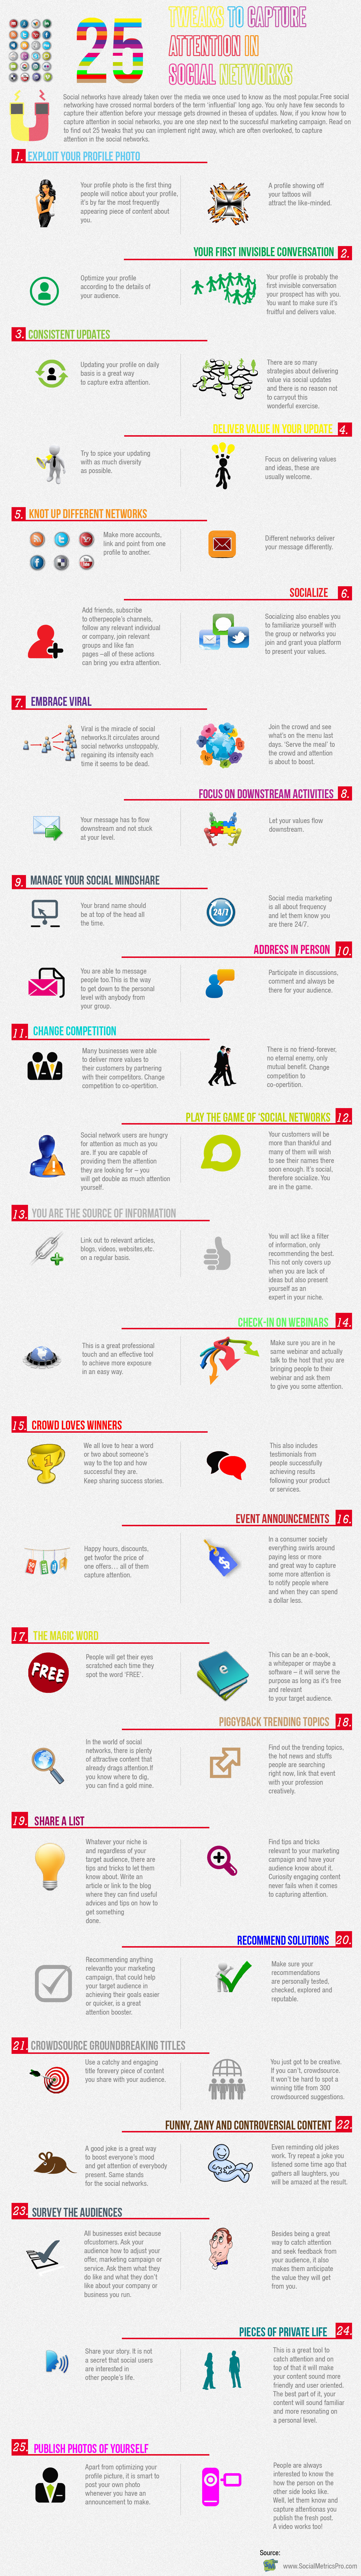 Infographic: 25 Tweaks To Capture Attention In Social Networks